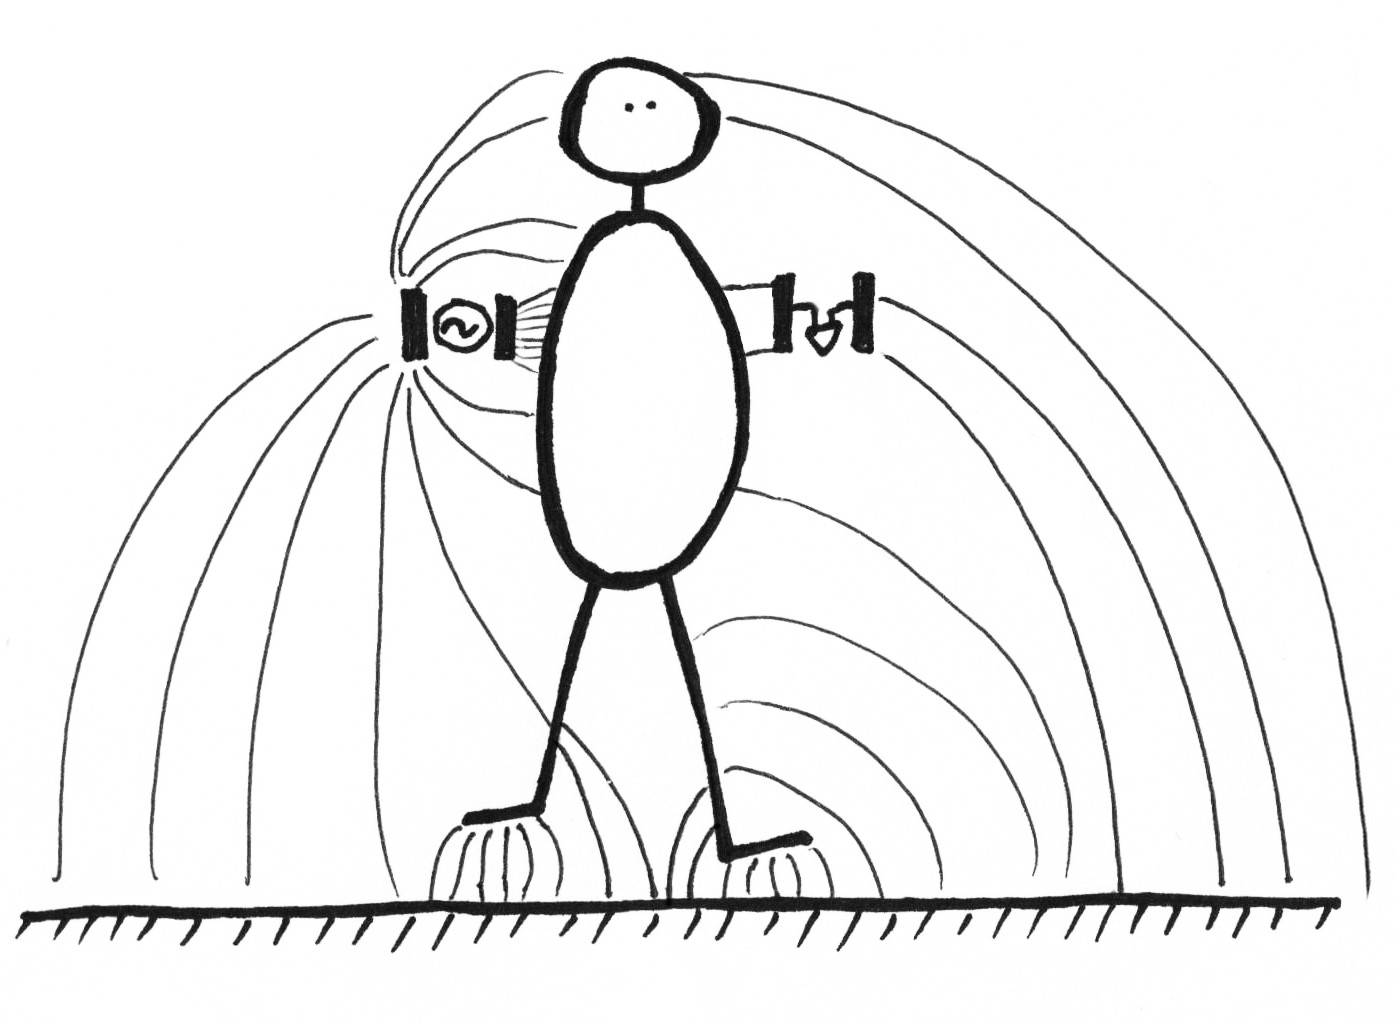 A Diagram Of Electric Field Capacitor